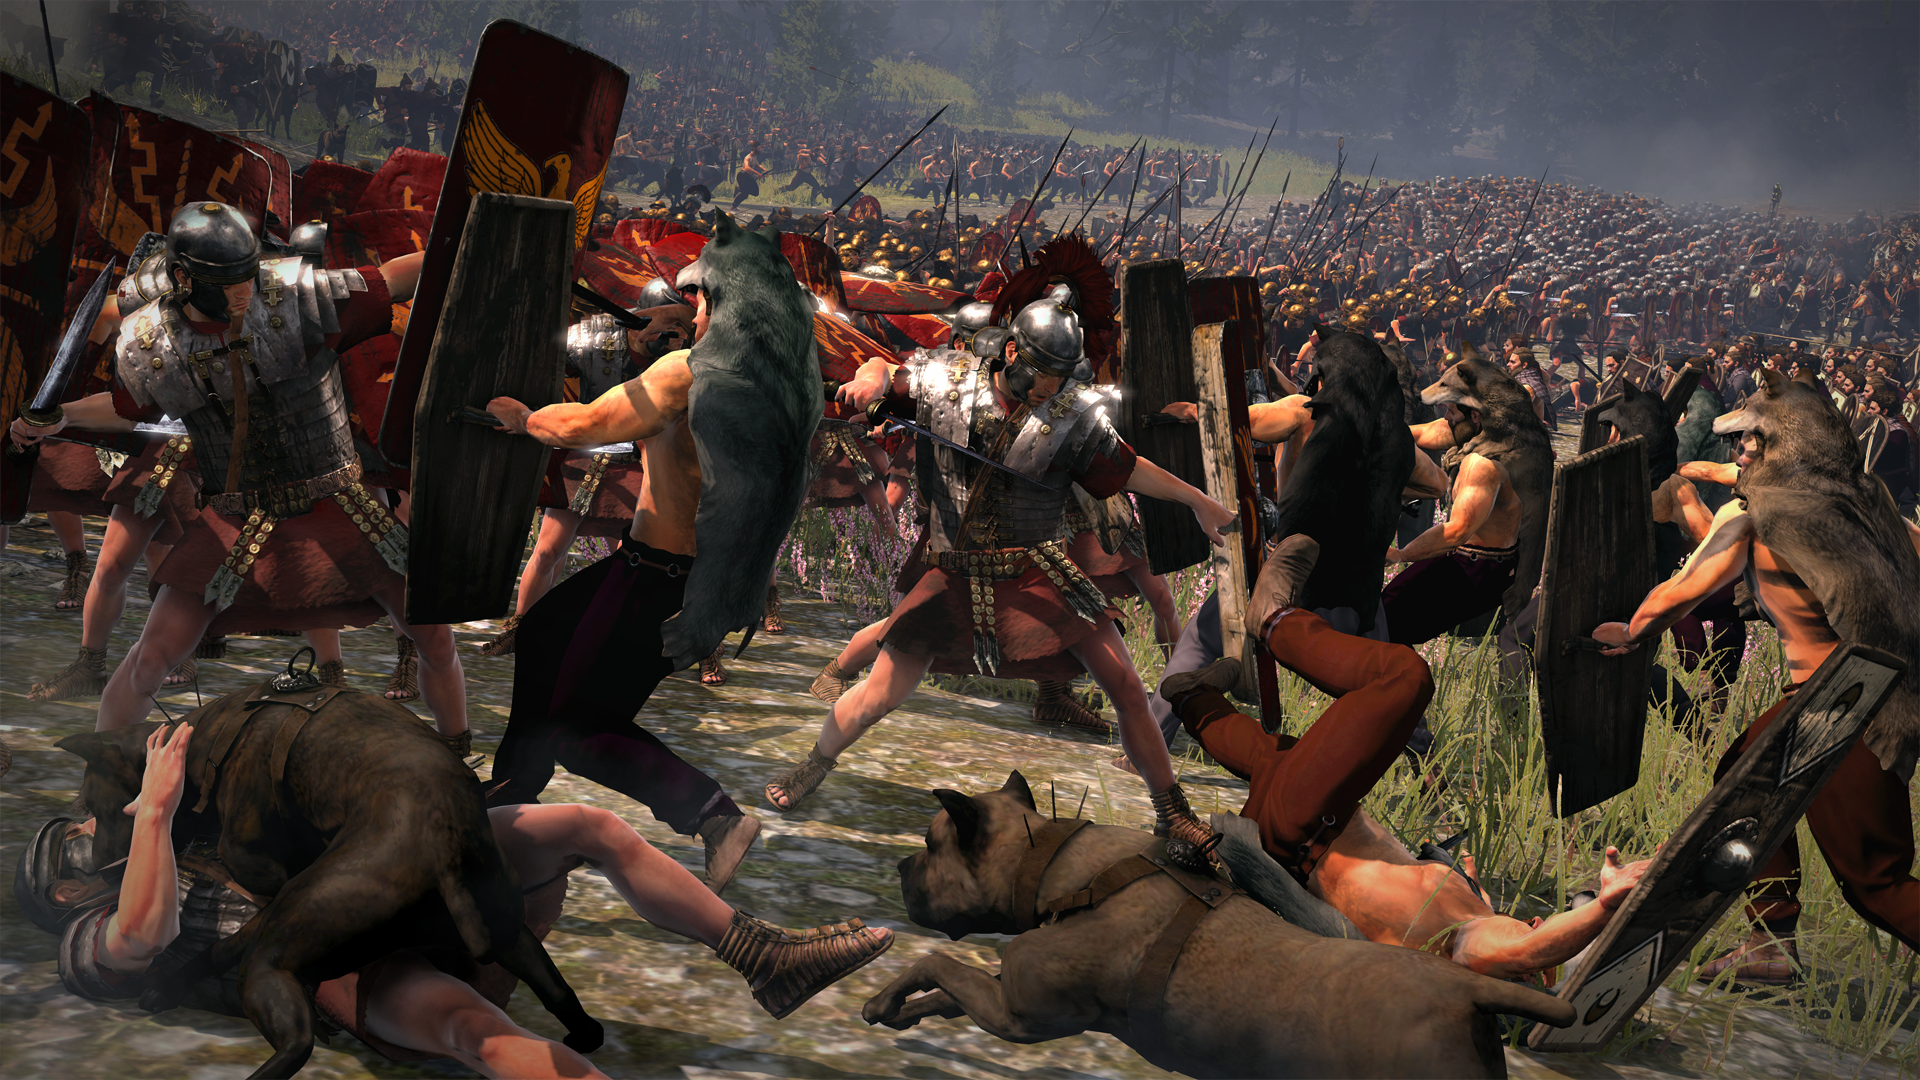 Total War Hd Png Transparent Total War Hdpng Images Pluspng